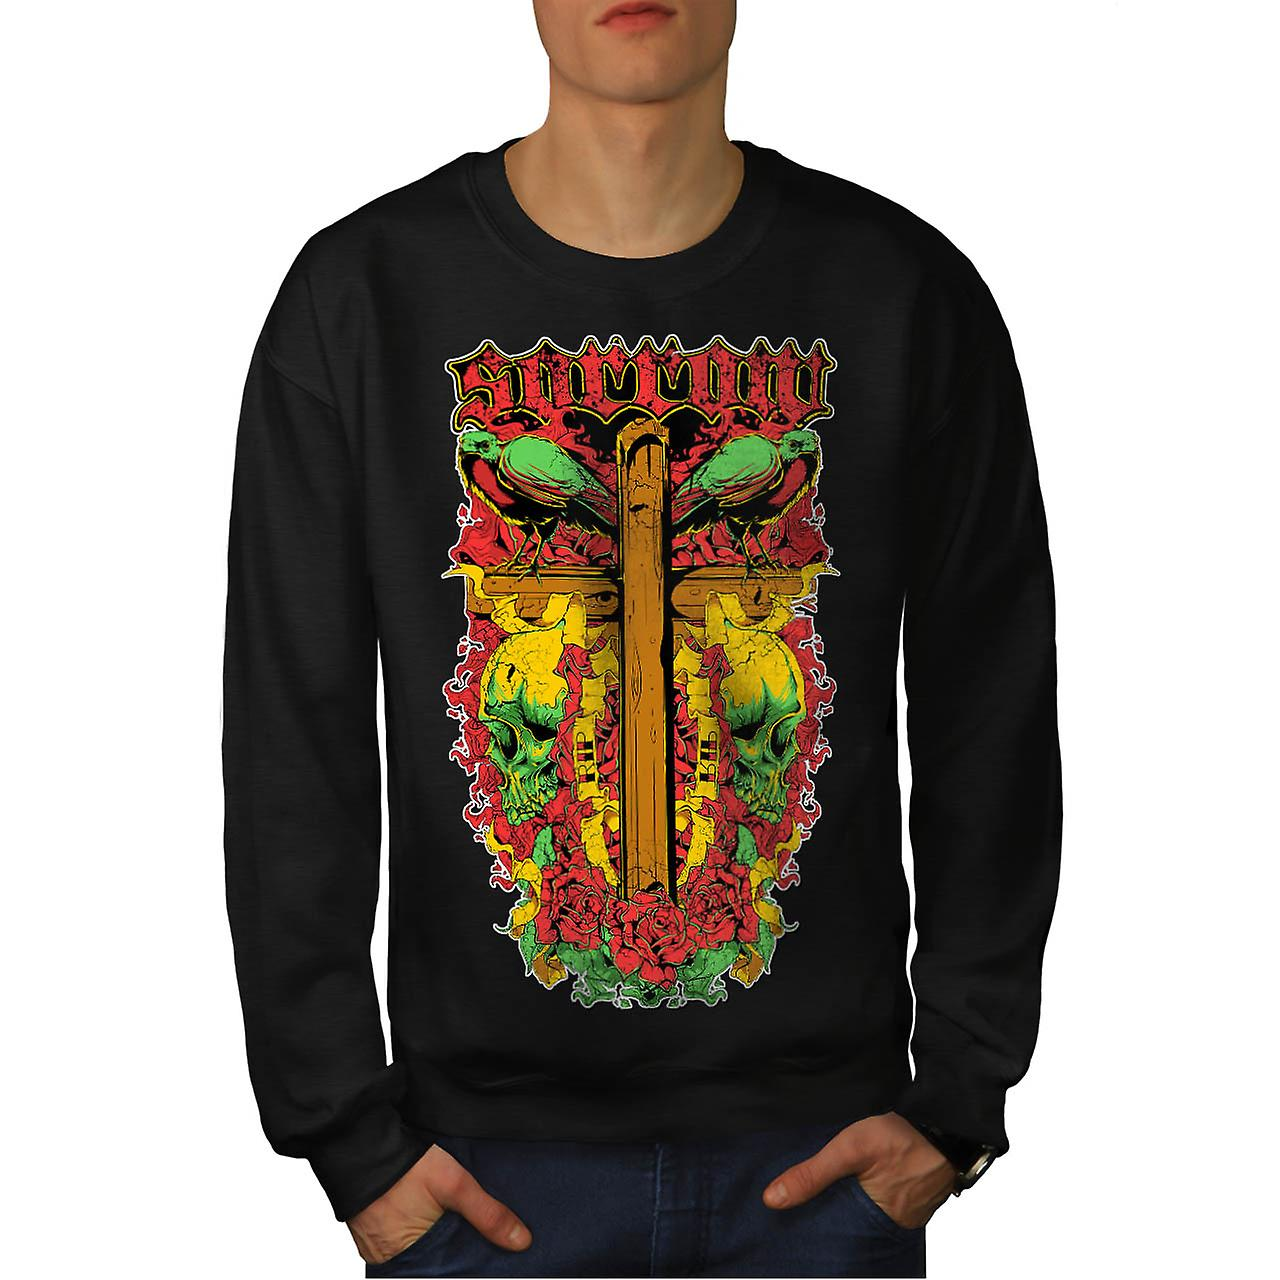 Die Sorrow Grave Yard Tomb Stone Men Black Sweatshirt | Wellcoda